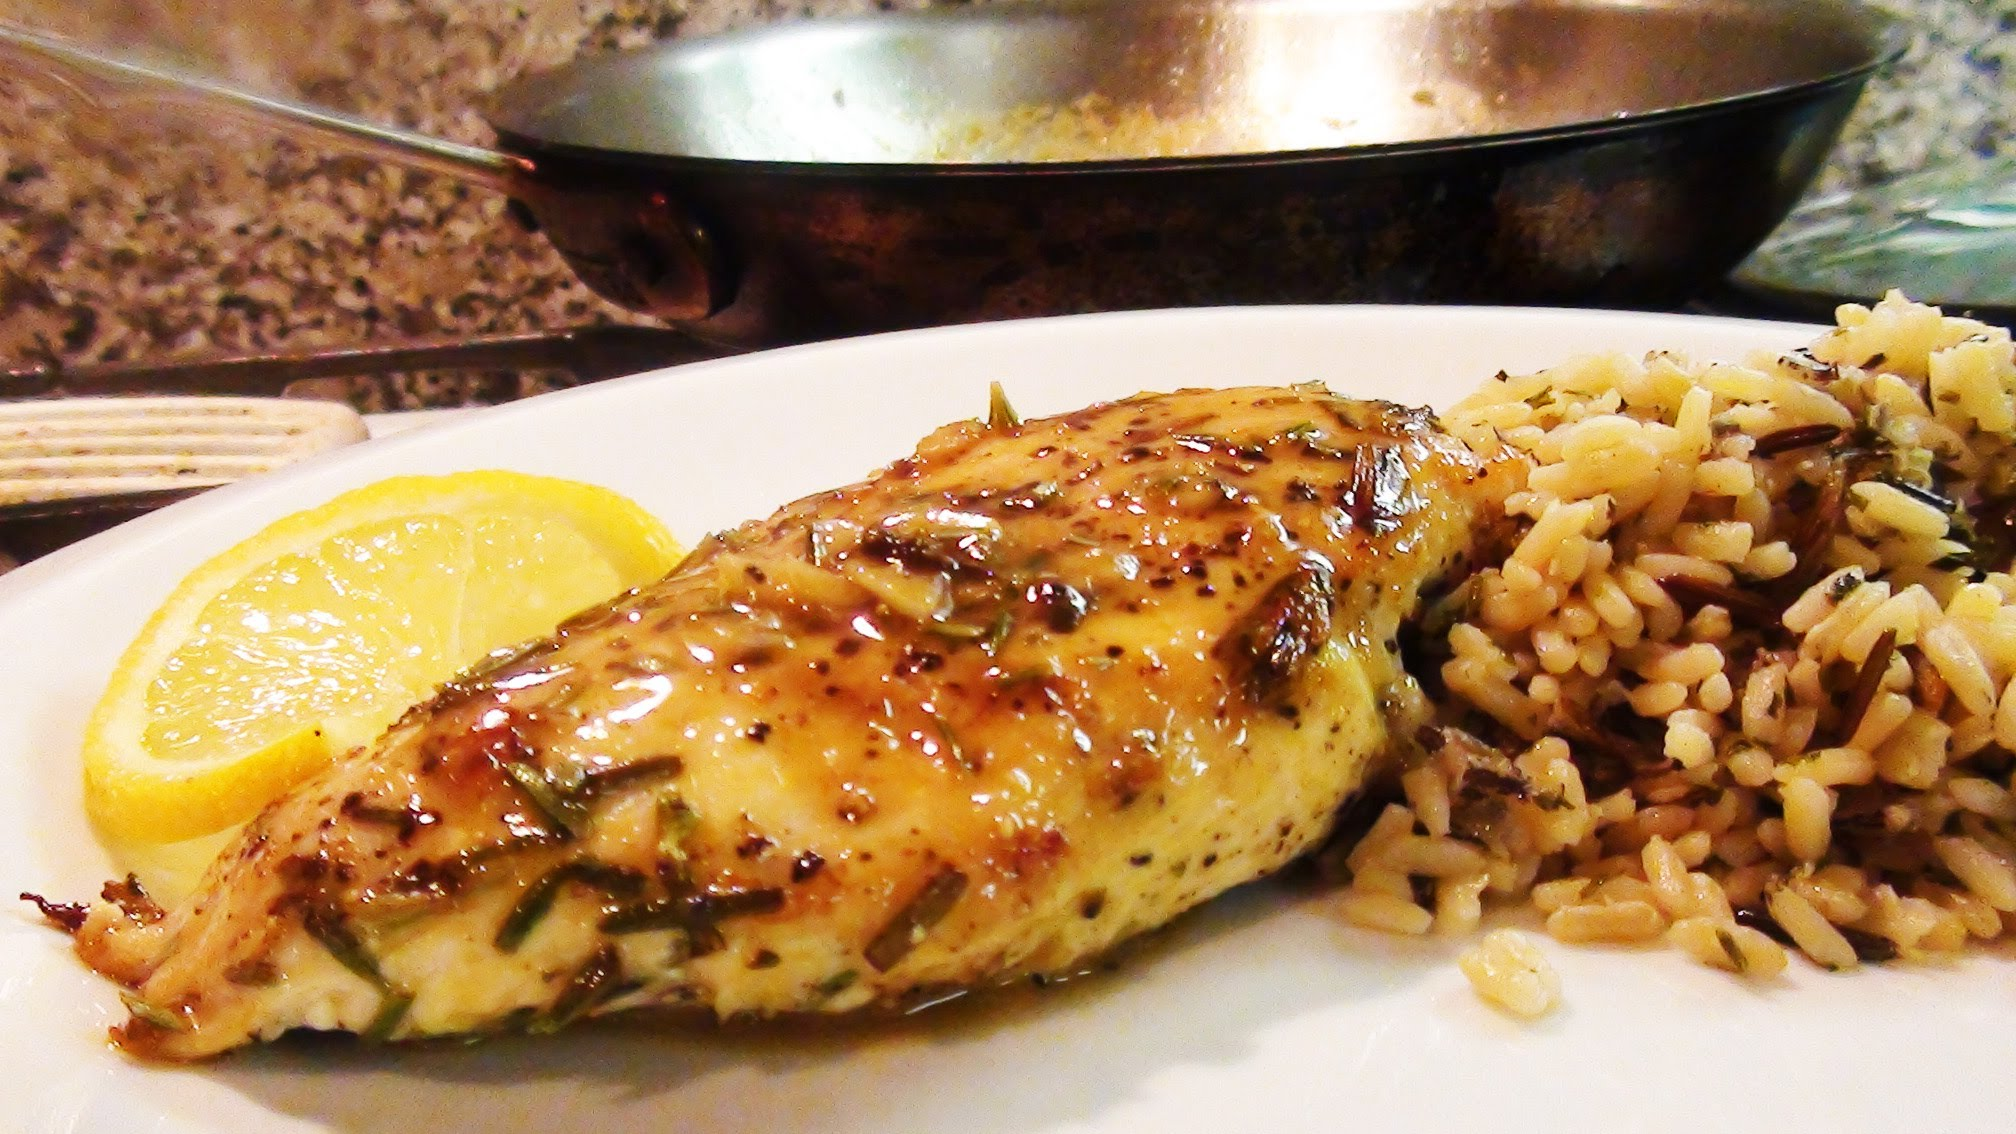 ... class - How to cook healthy Rosemary Lemon Chicken breast step